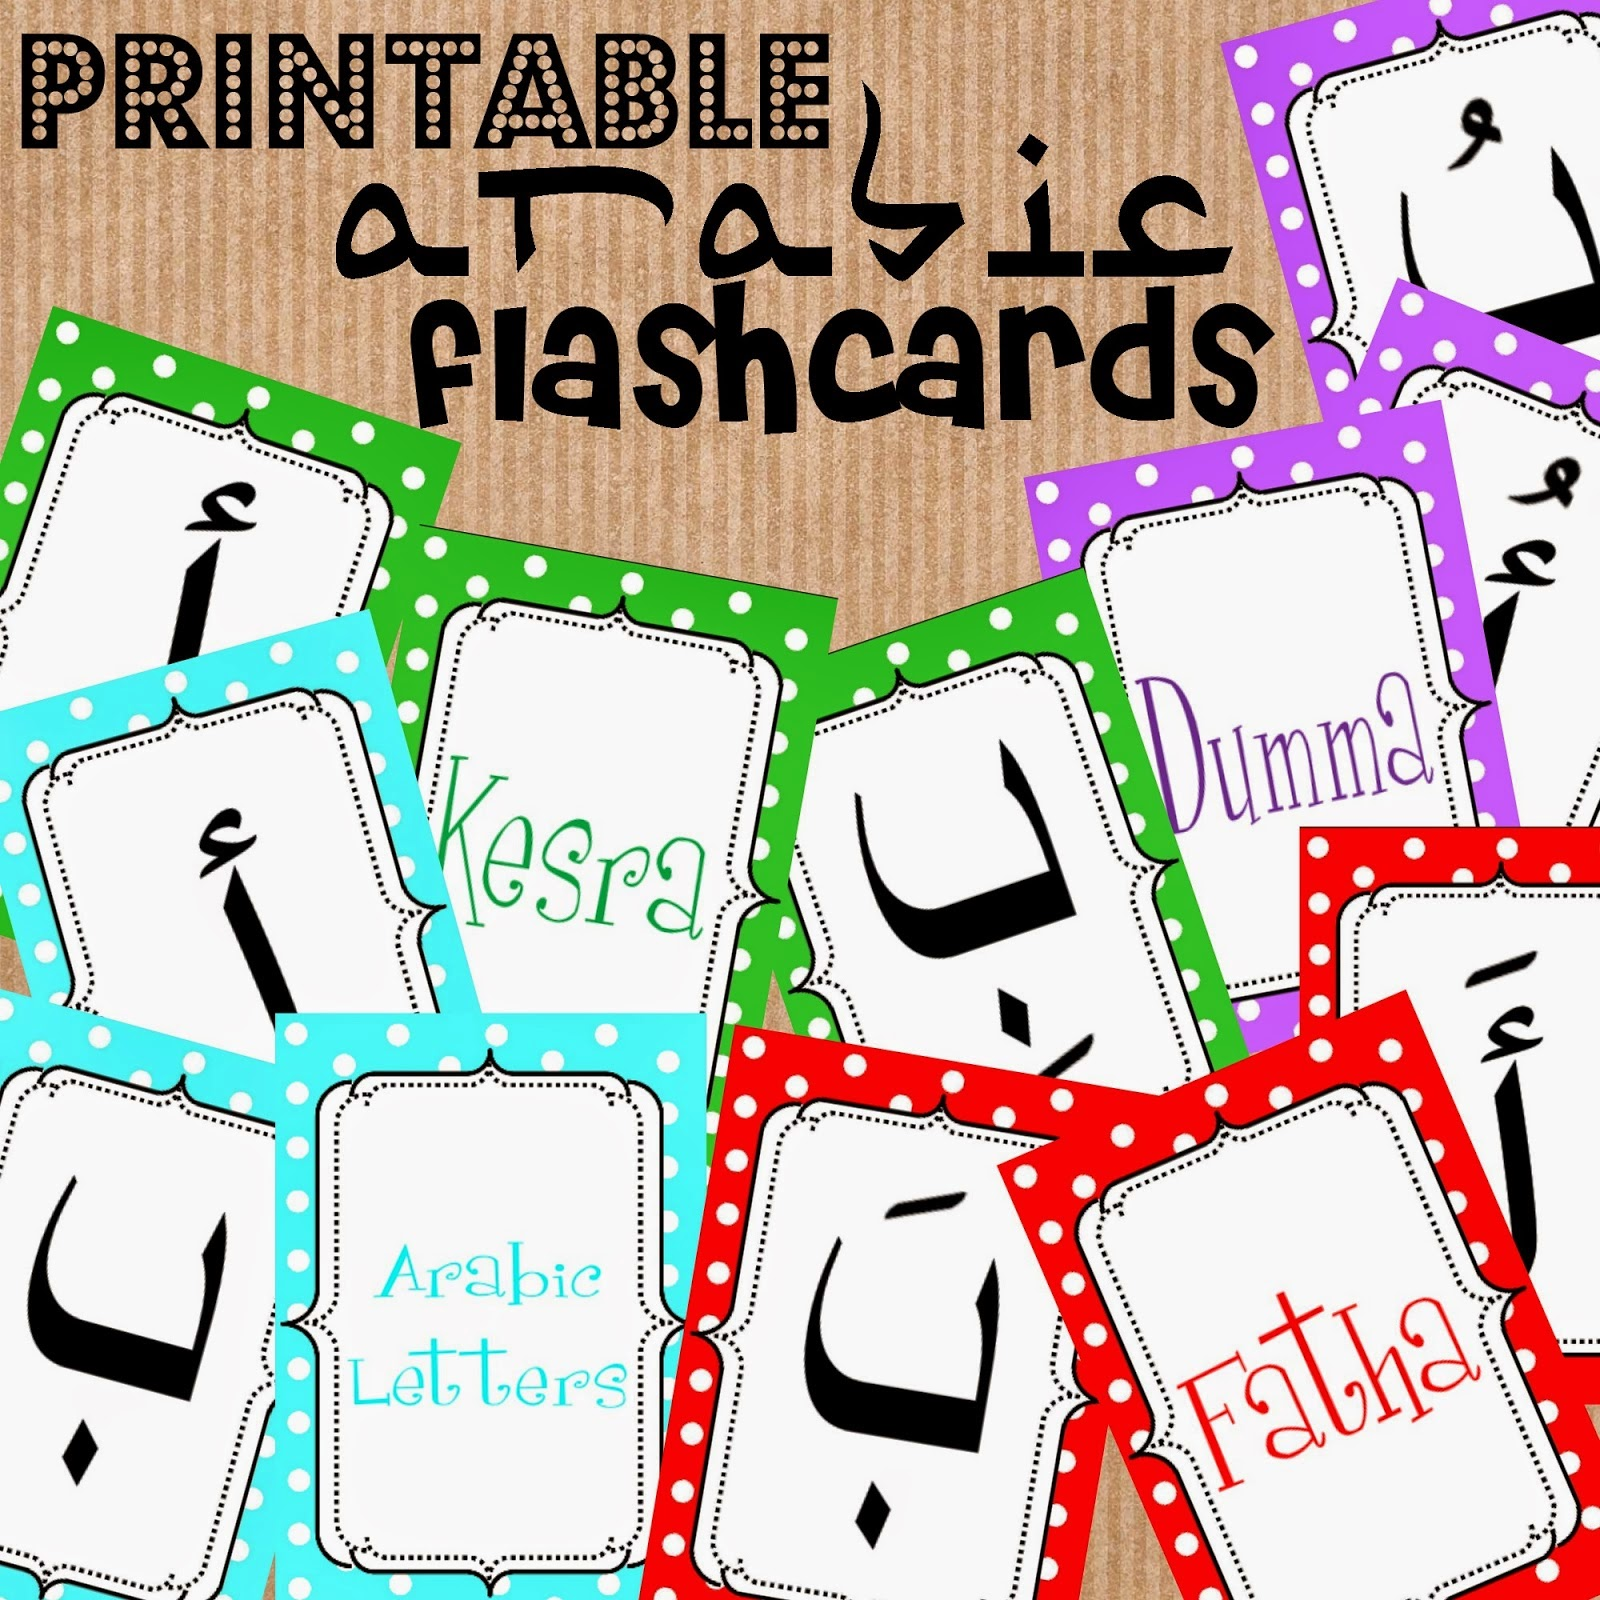 Arabic alphabet flashcards with harakat